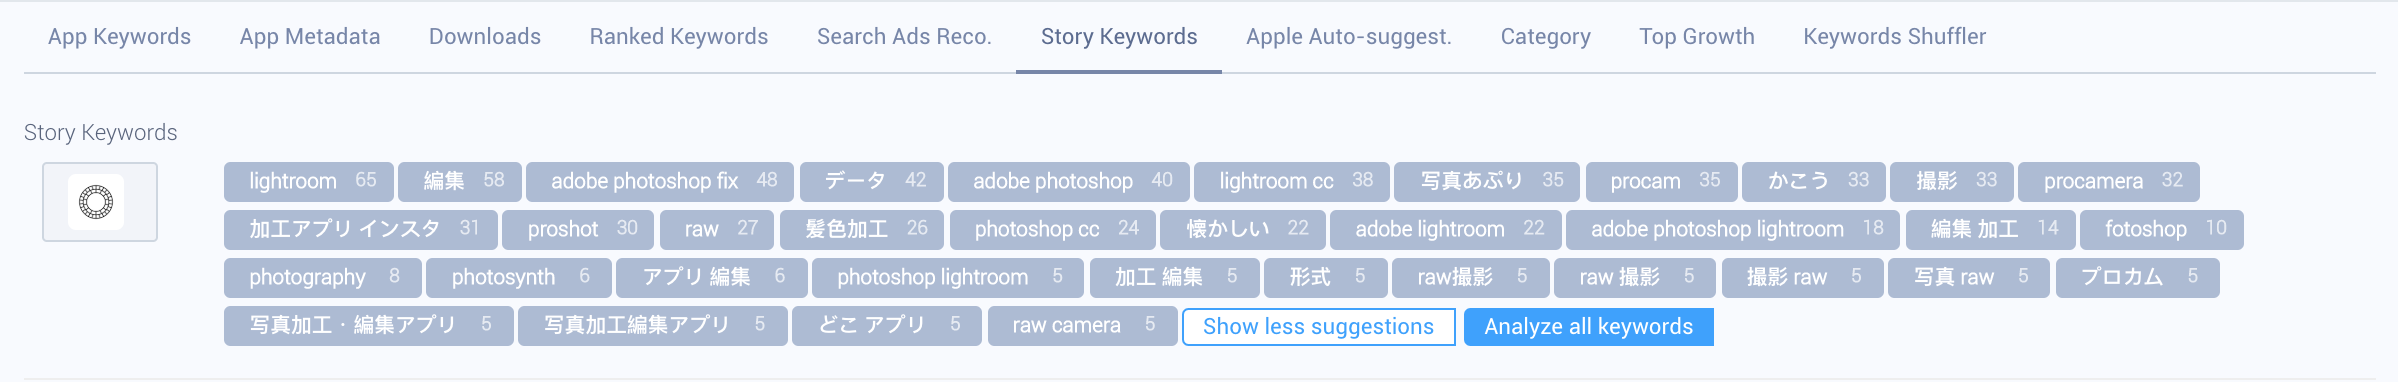 Story keywords for VSCO (Japan) on AppTweak.